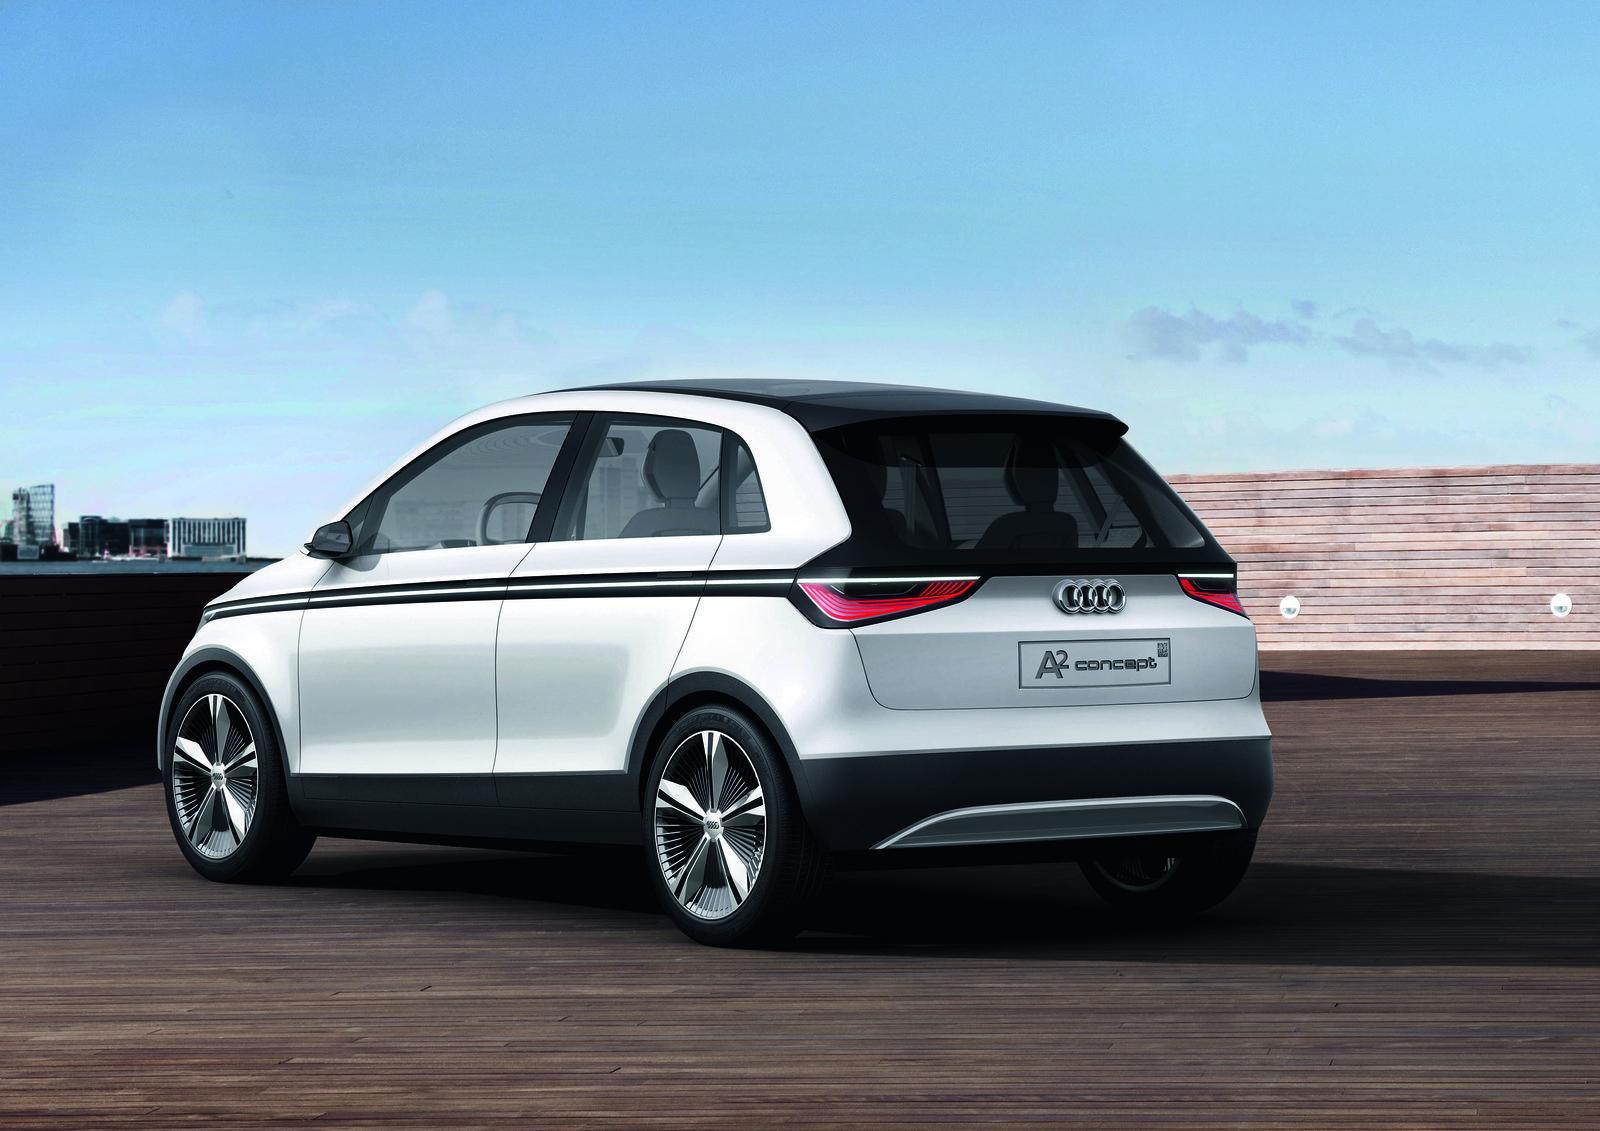 2015 Audi A2 2 2015 Audi A2 previous plans slashed and thus building its hopes on a new plan